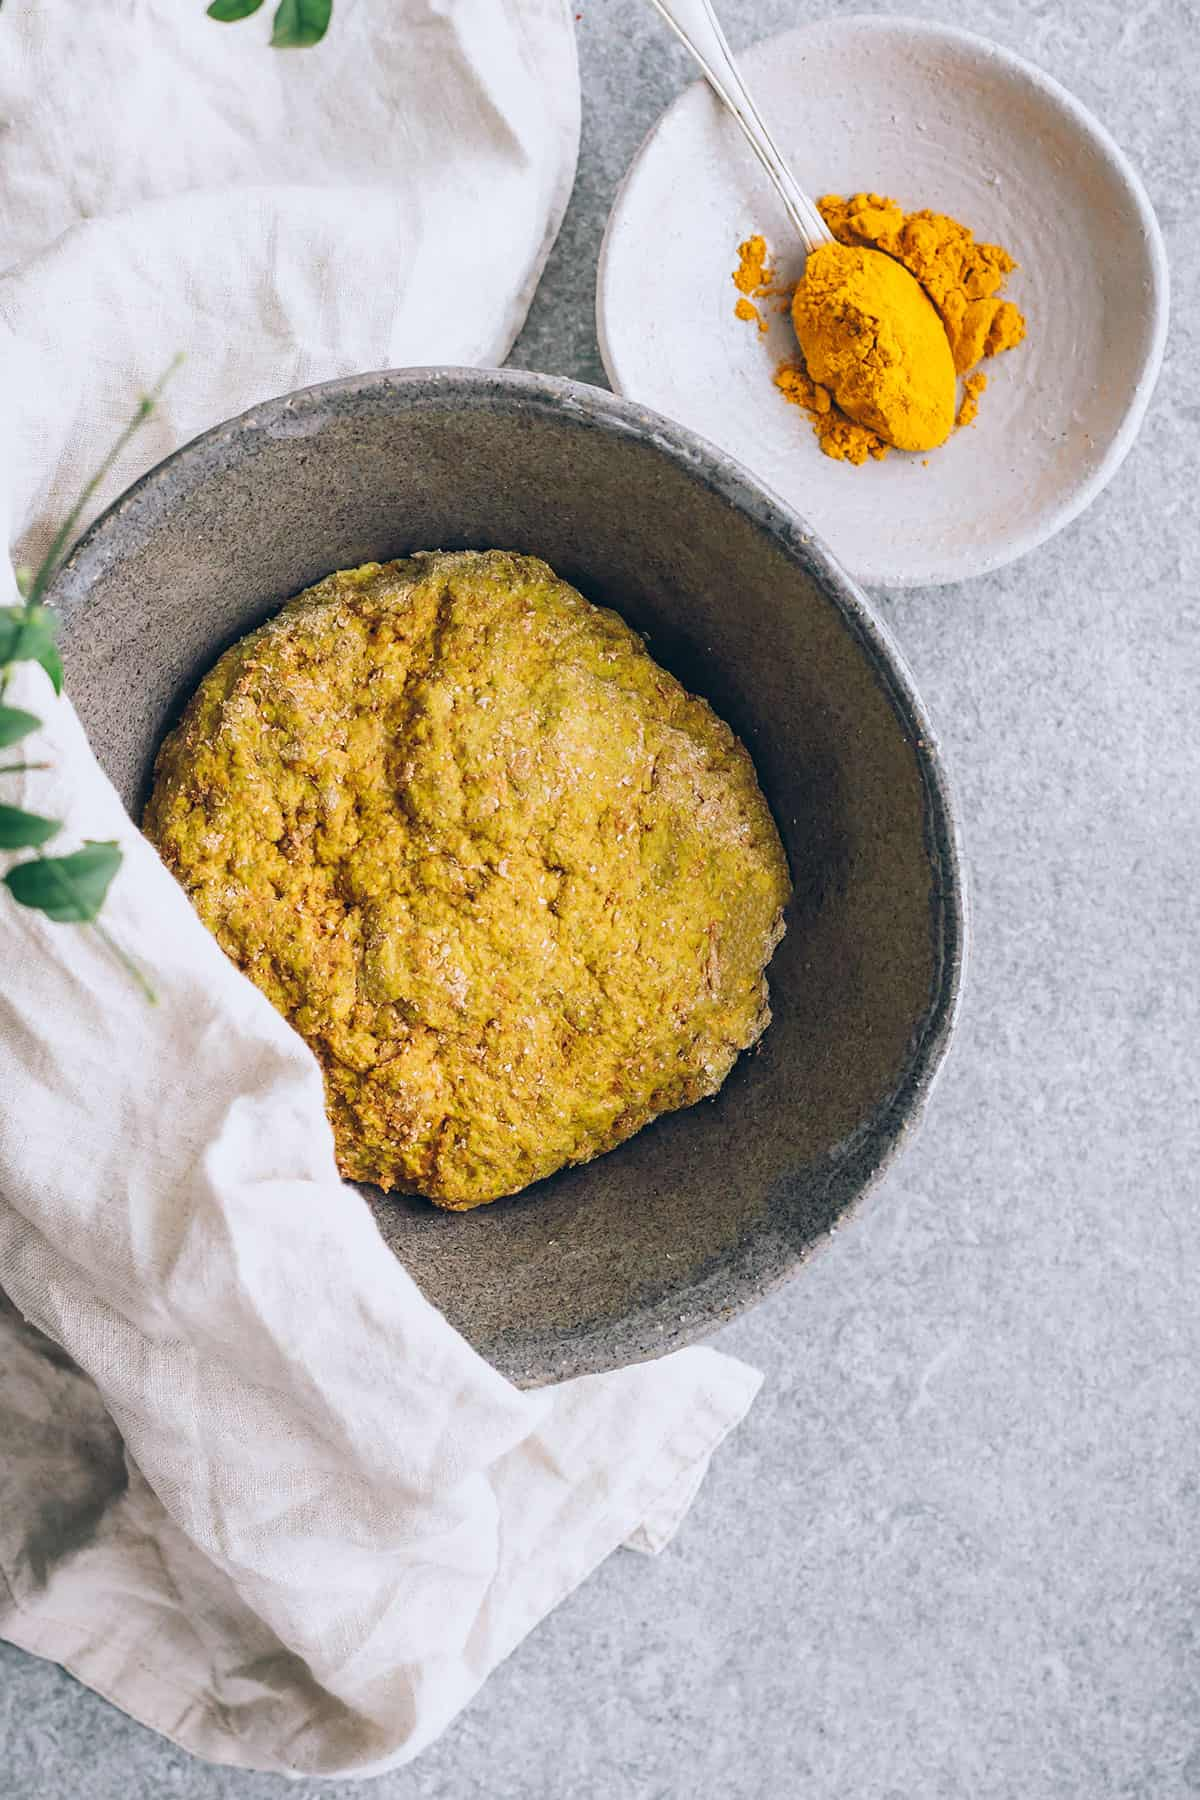 No-Fail Turmeric Tortillas For Epic (Anti-Inflammatory!) Tacos